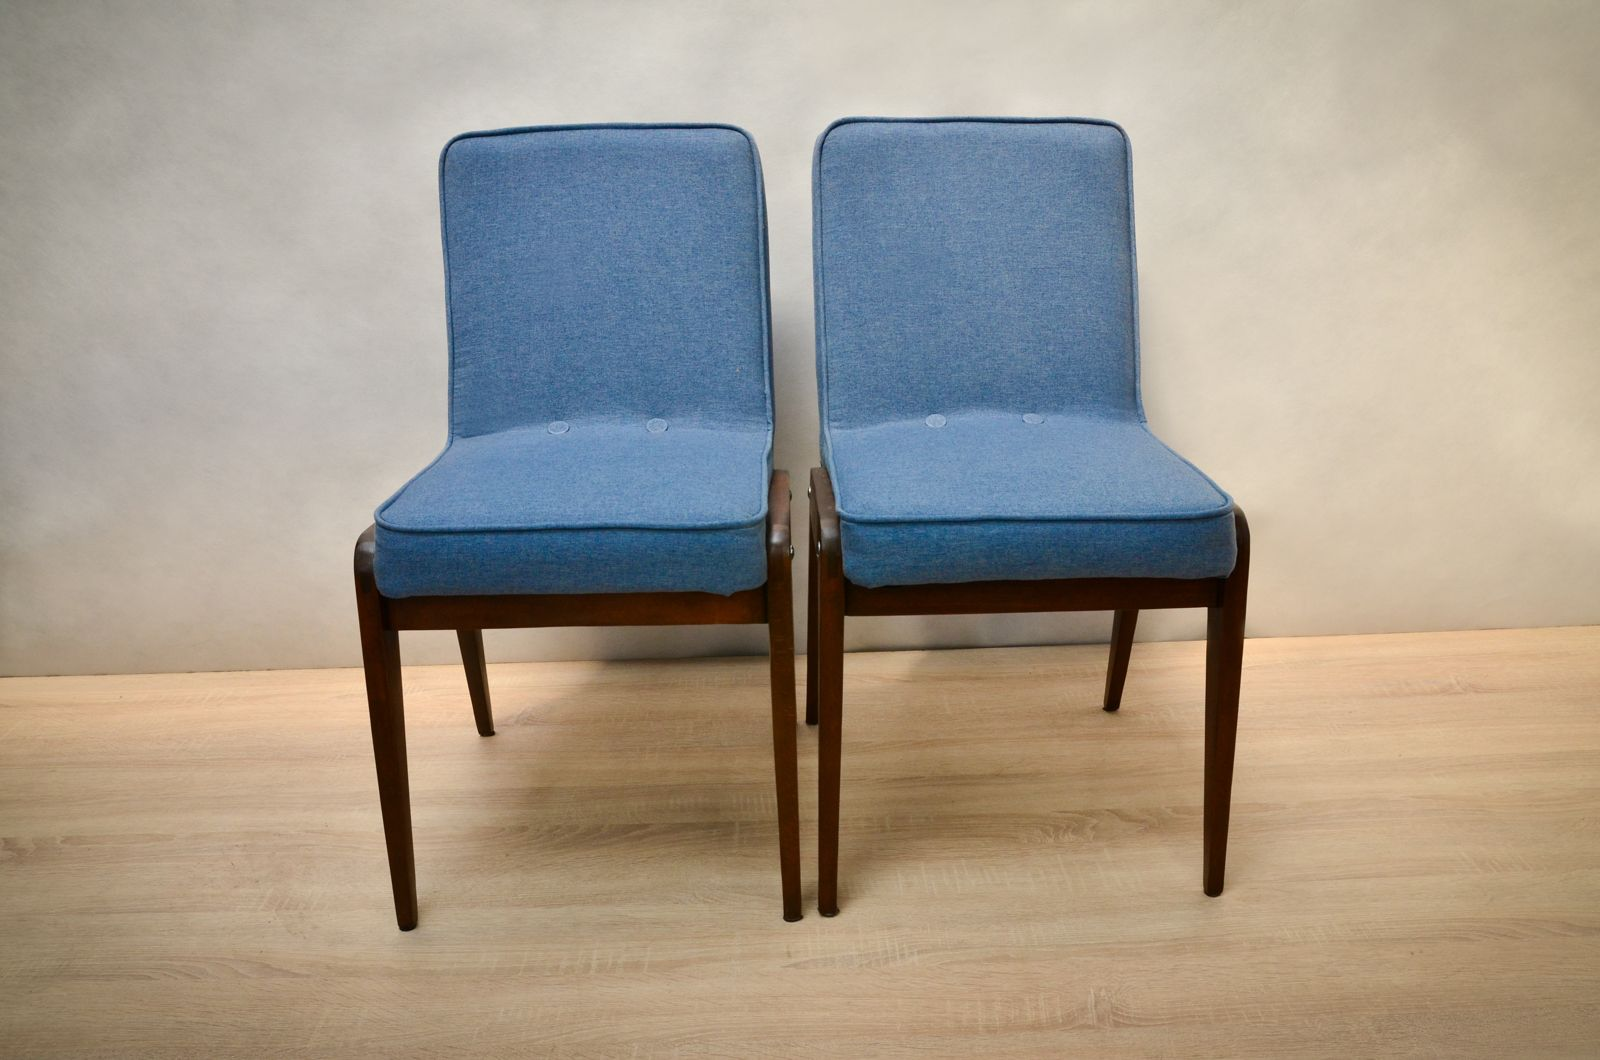 Light blue dining chairs - Aga Light Blue Dining Chairs By J Zef Marian Chierowski S